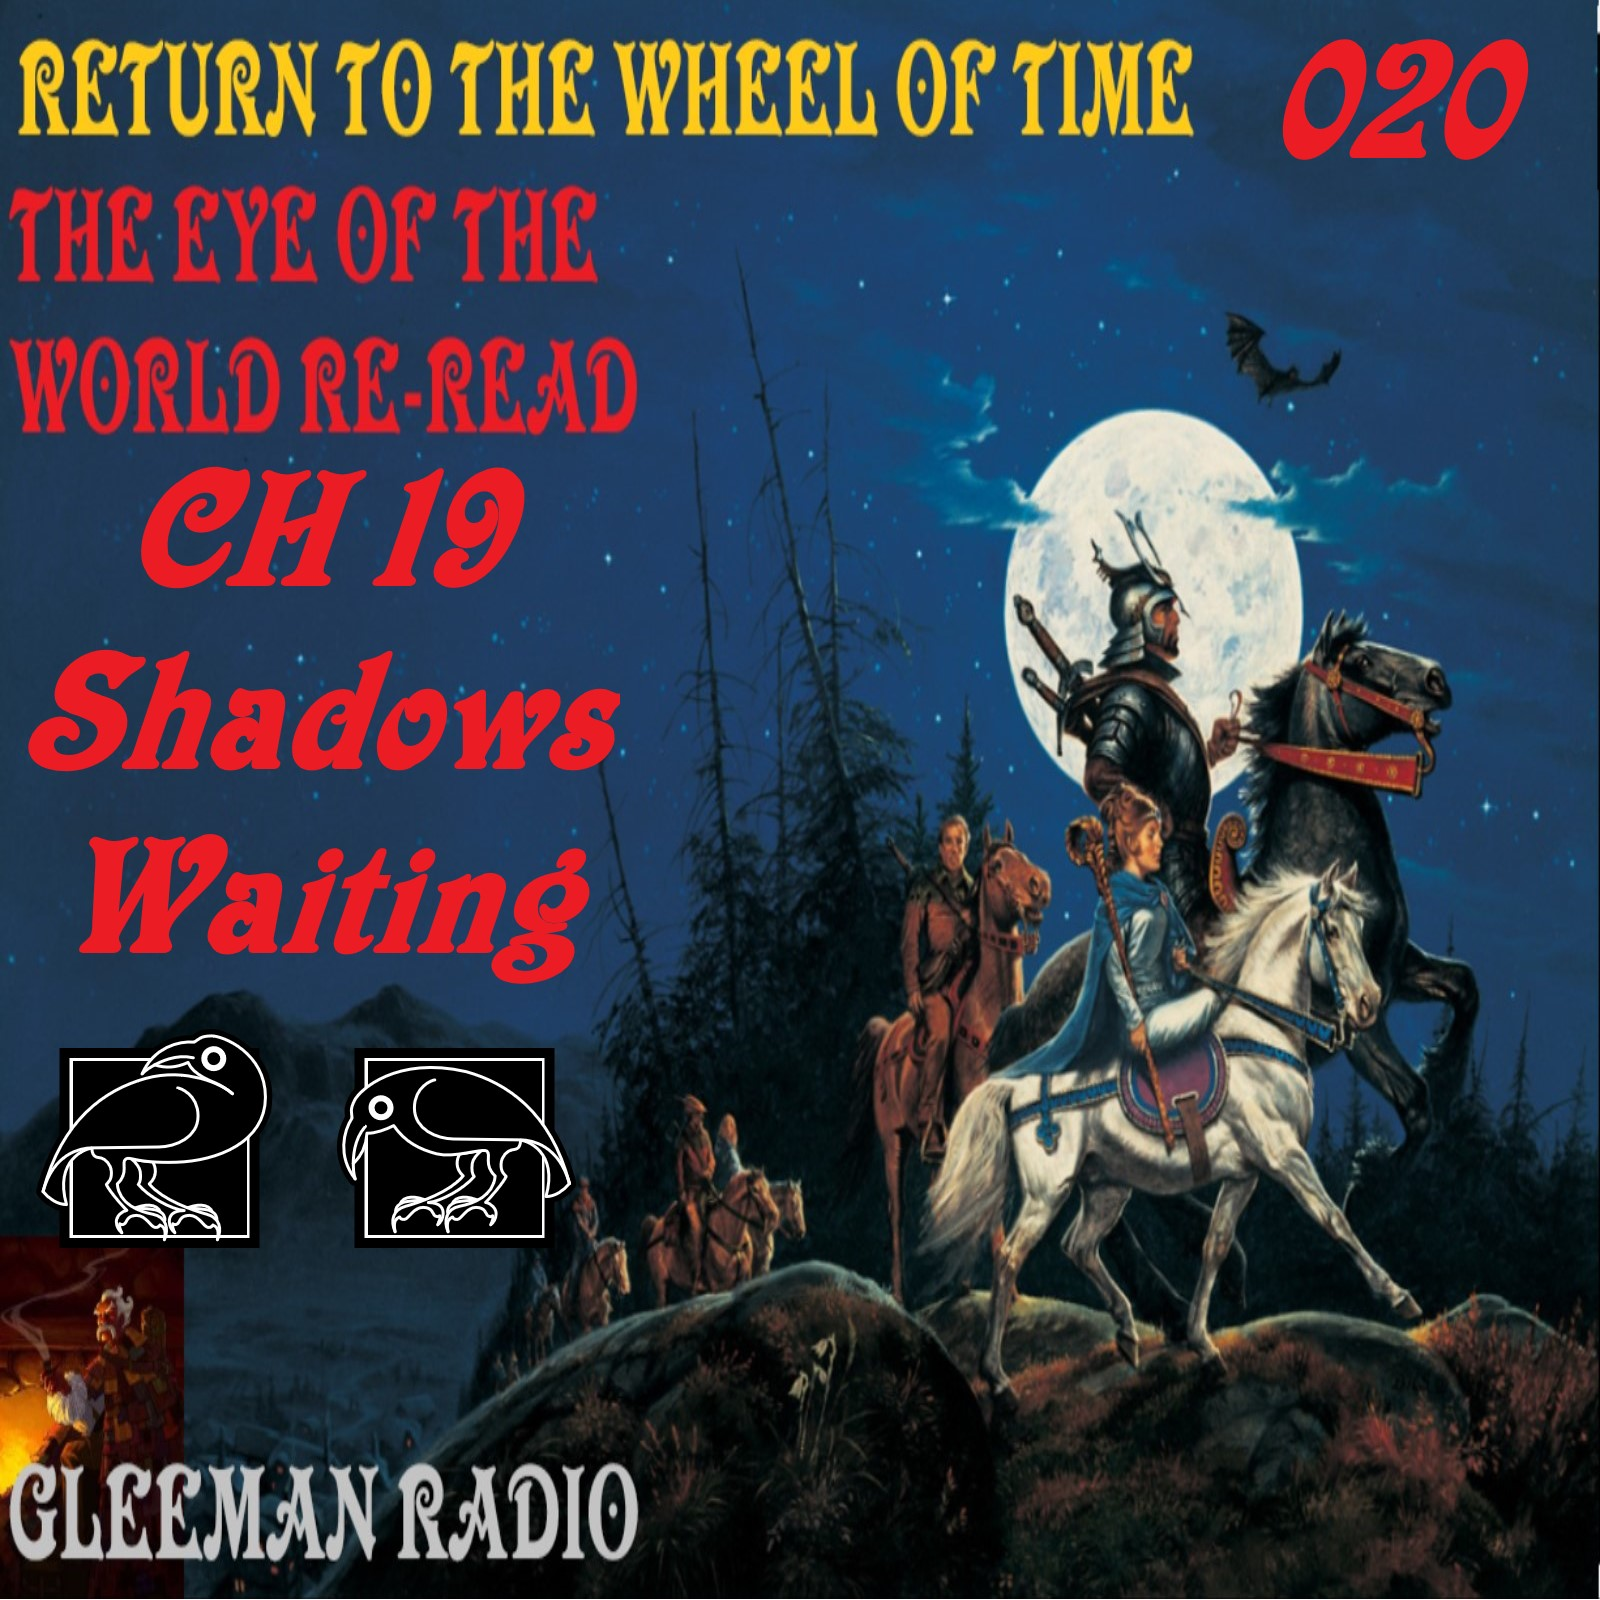 CH 19 Shadows Waiting - The Eye of the World ReRead - Return to The Wheel of Time Ep. 020